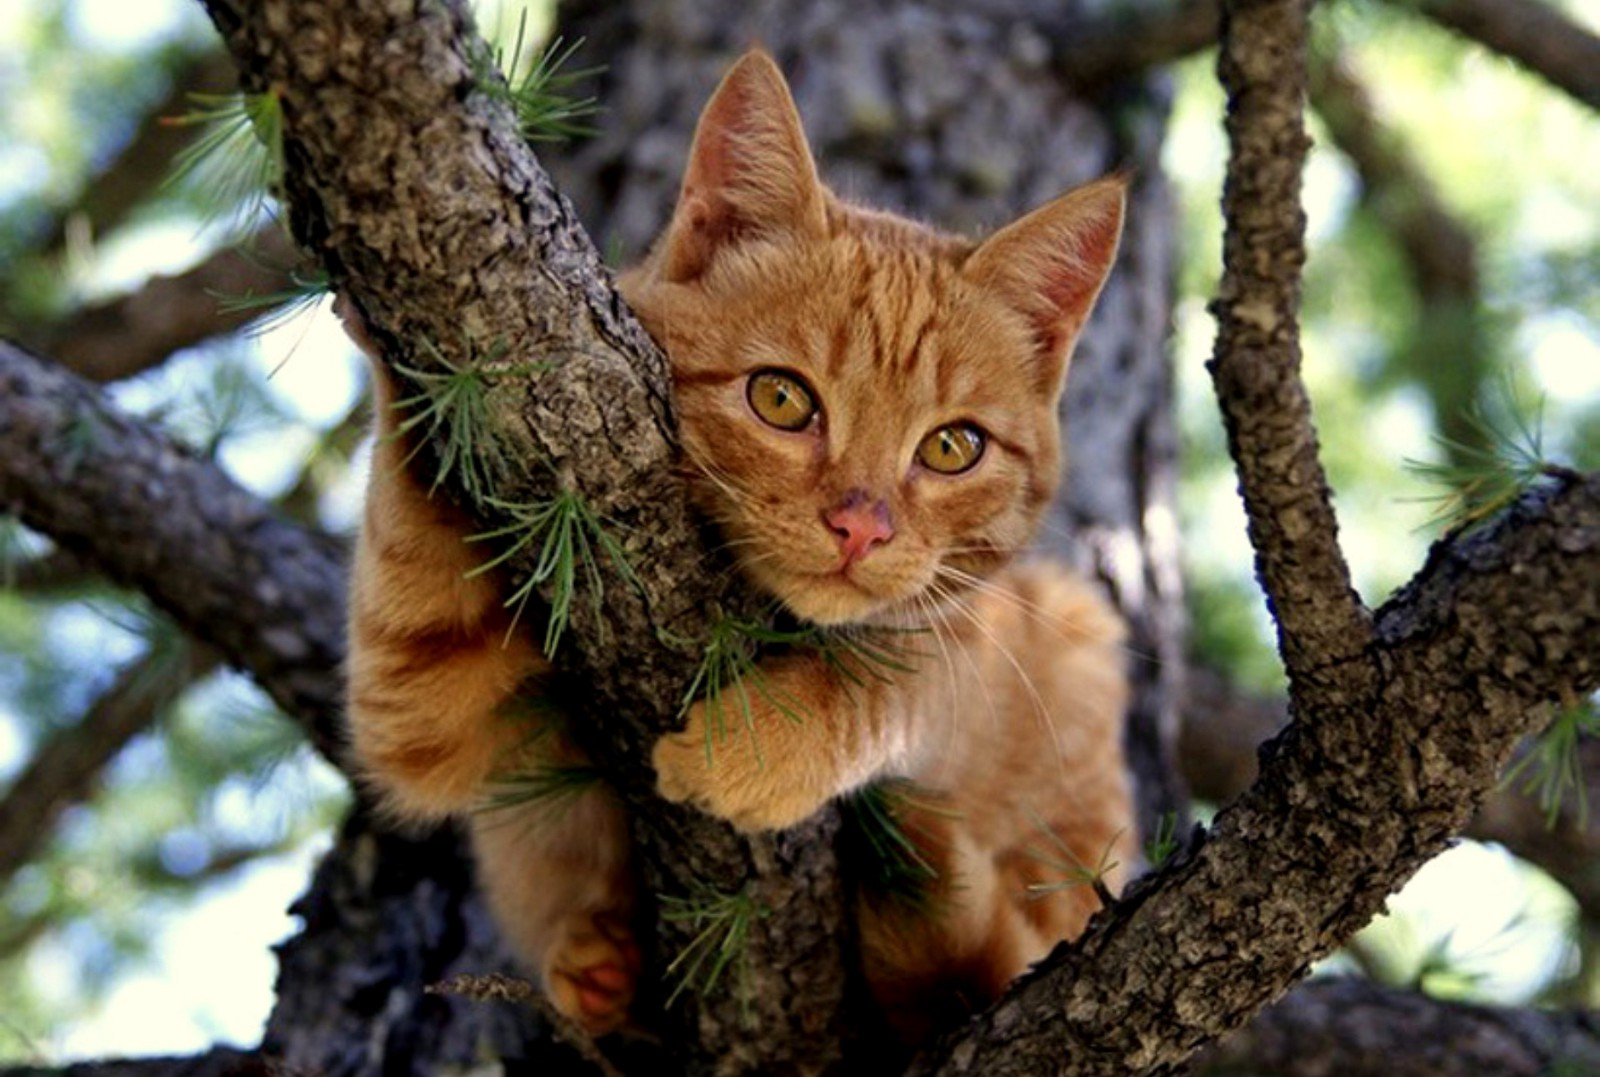 Cute Orange Kittens Wallpaper Have You Ever Seen A Cat Skeleton In A Tree The Impact Of